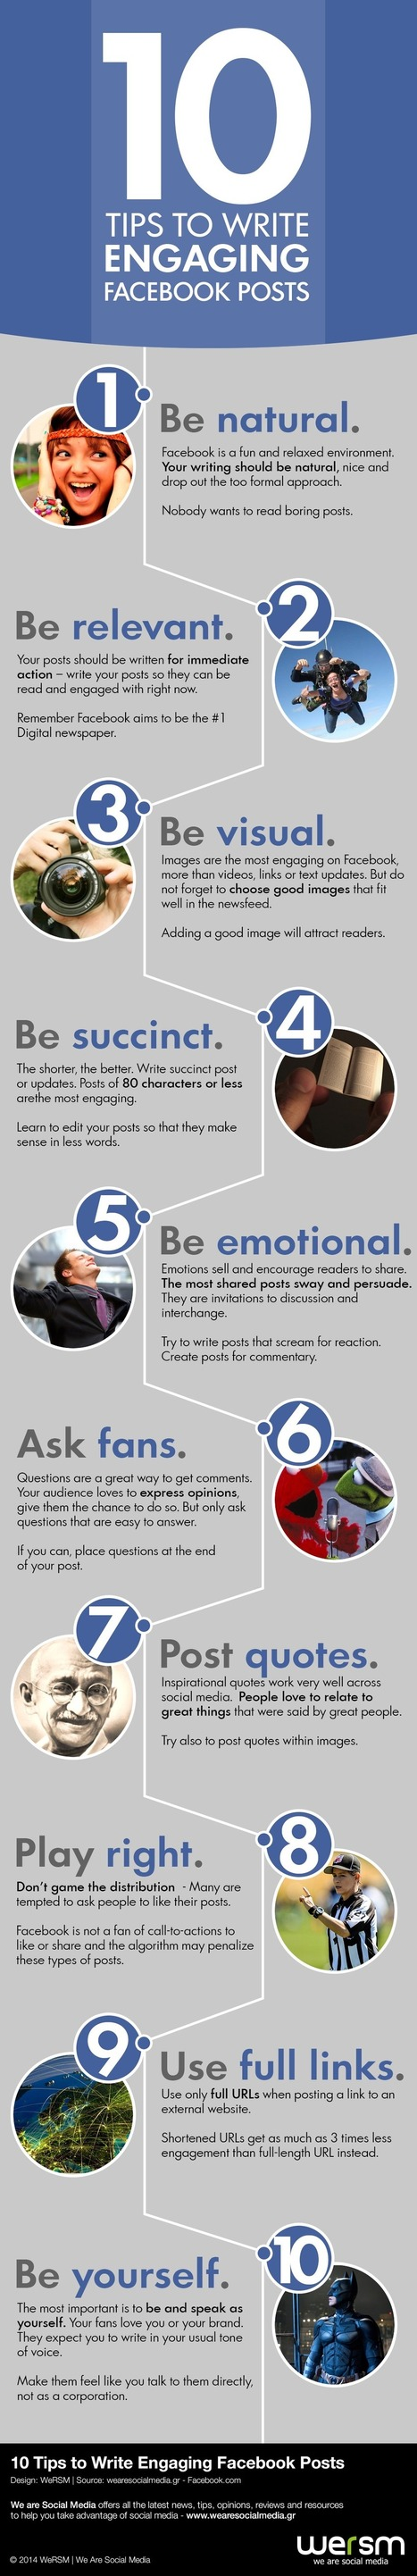 10 tips to write engaging facebook posts [Infographic] | Time to Learn | Scoop.it